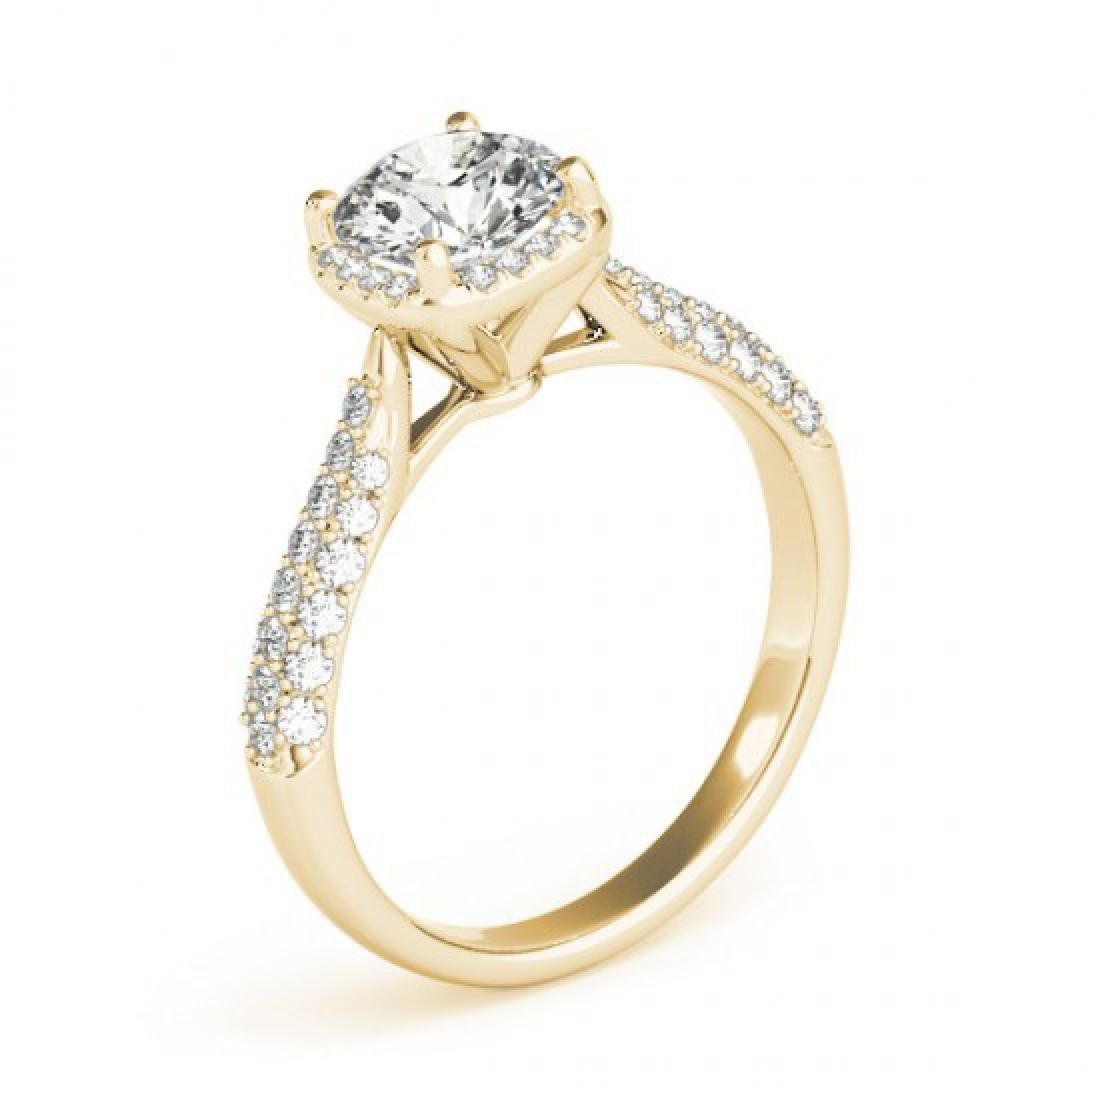 1.5 CTW Certified VS/SI Diamond Solitaire Halo Ring 14K - 3